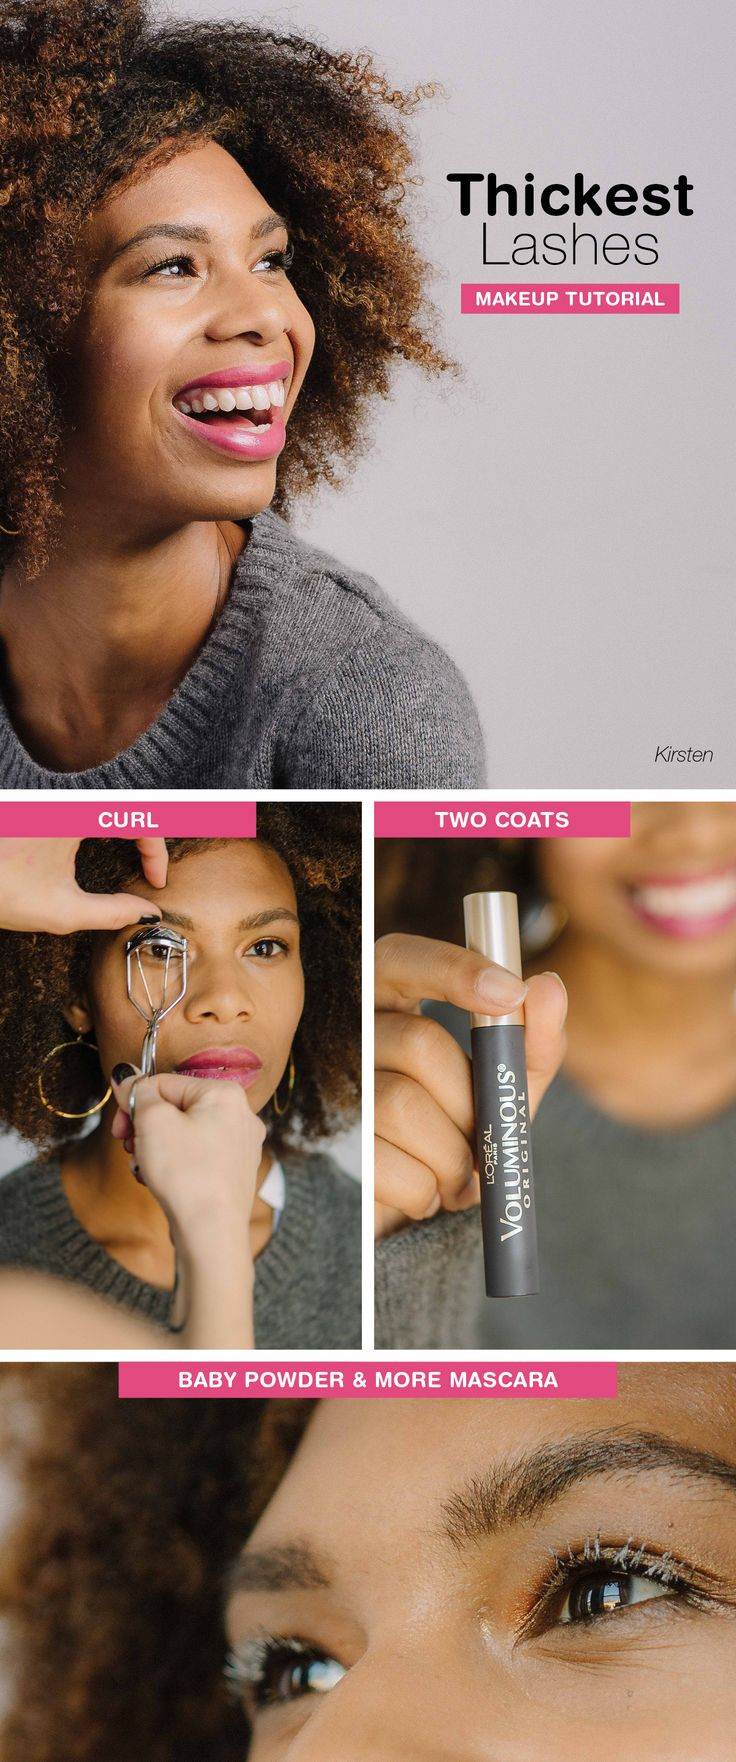 The bigger, the better! Bulk up your lashes with this old-school volumizing trick: Coat lashes with baby powder! Get the full tutorial on our Be Beautiful blog!